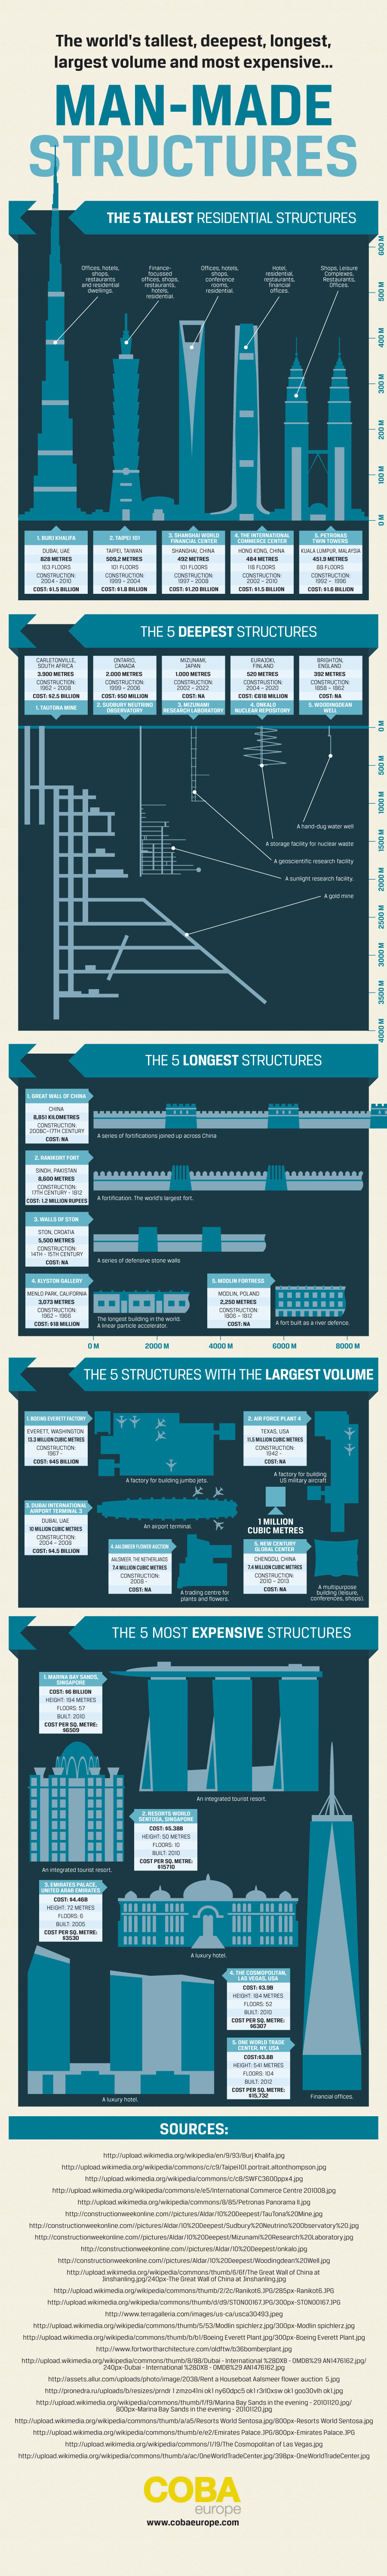 Infographic: The World's Tallest Man-Made Structures #infographic